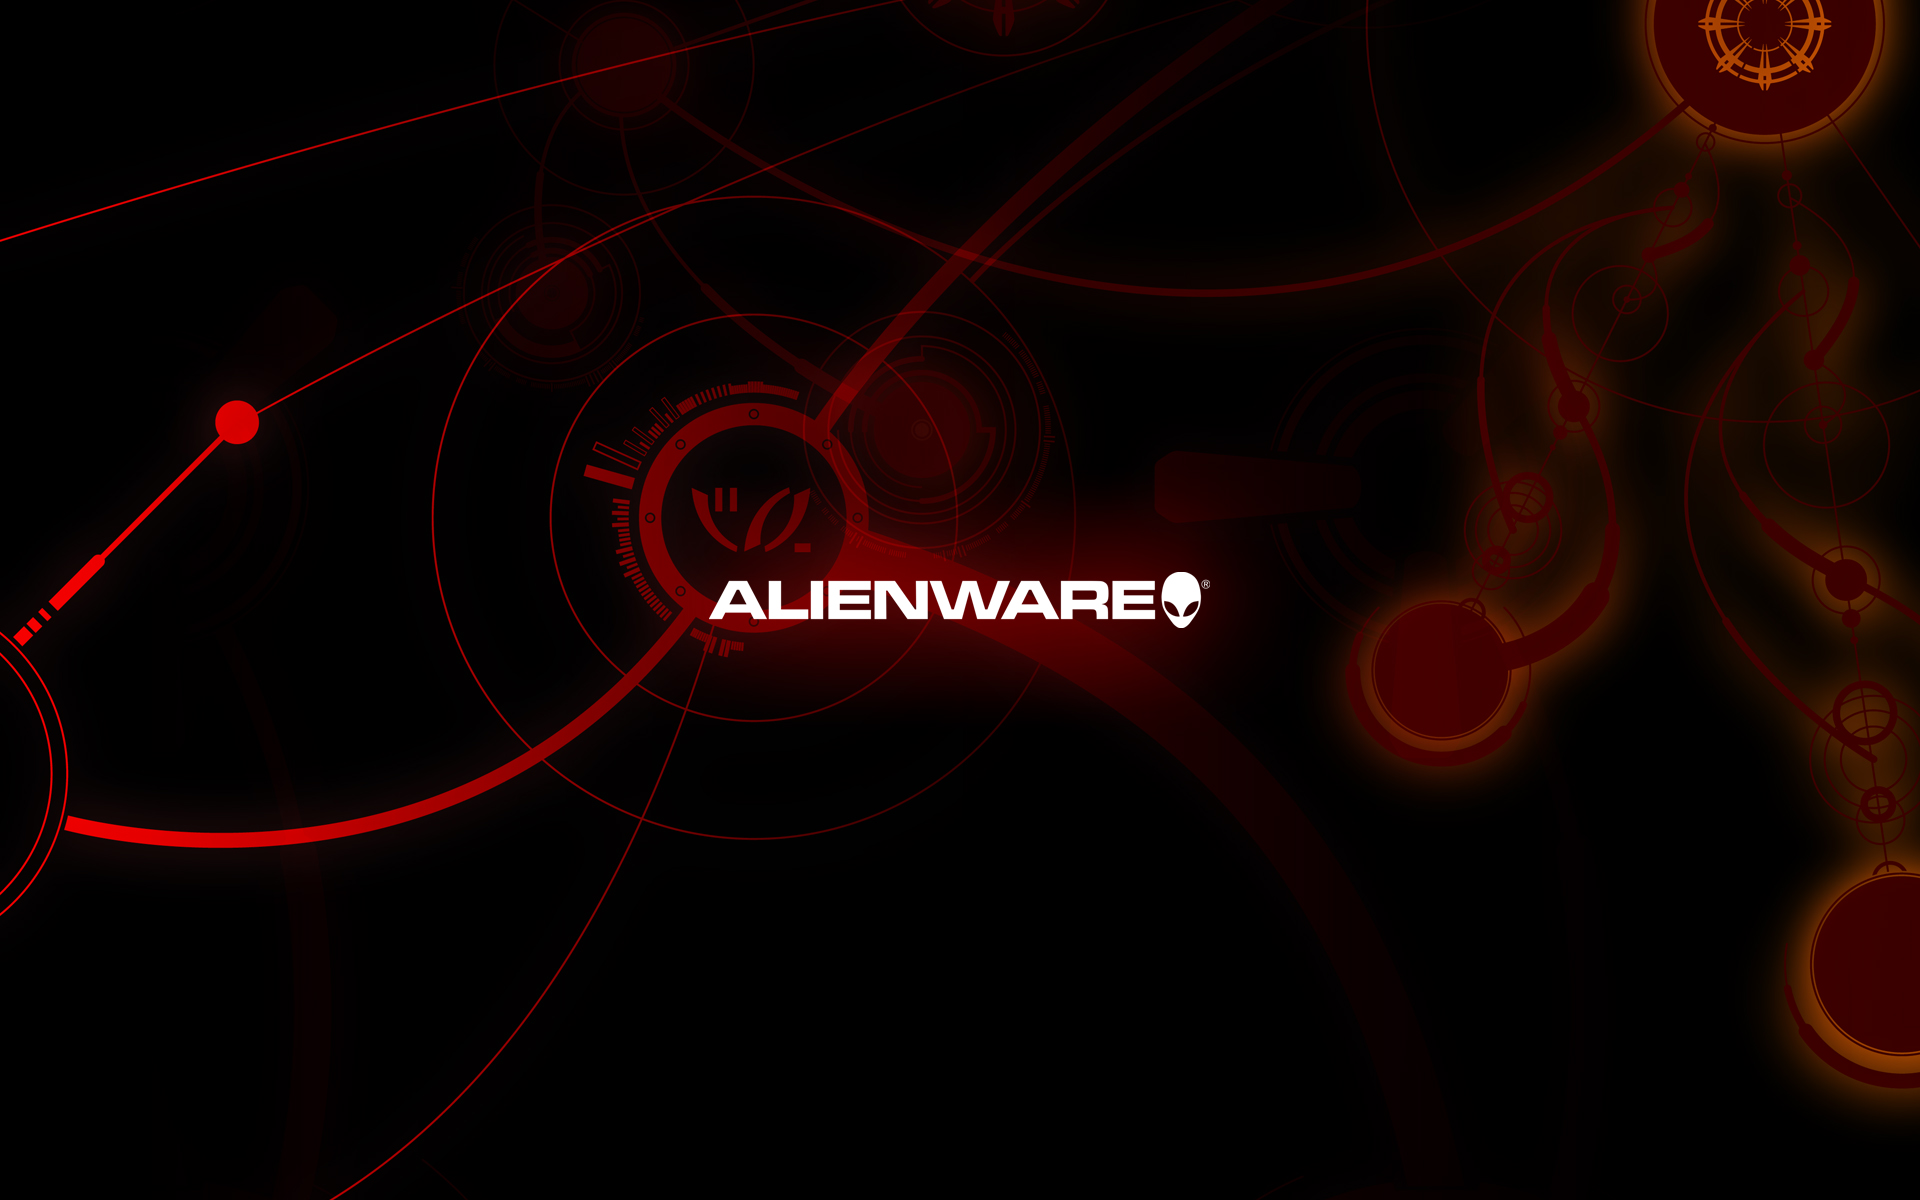 Best Alienware Wallpaper Desktop